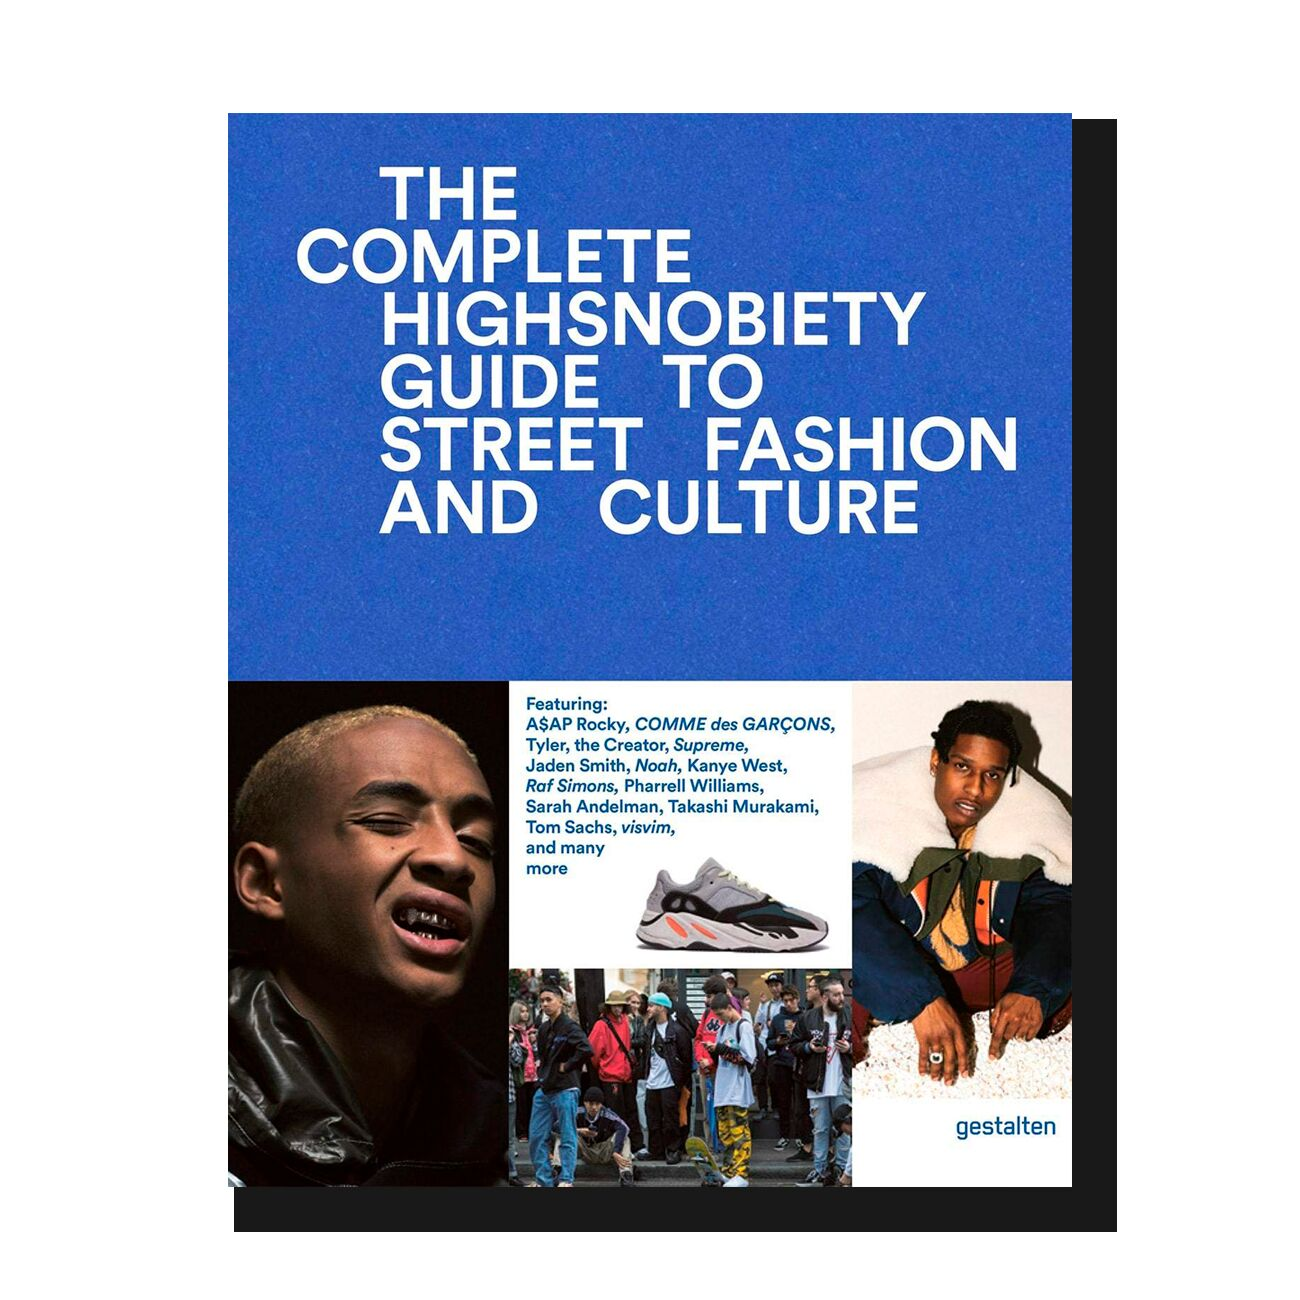 The Incomplete: Highsnobiety Guide to Street Fashion and Culture